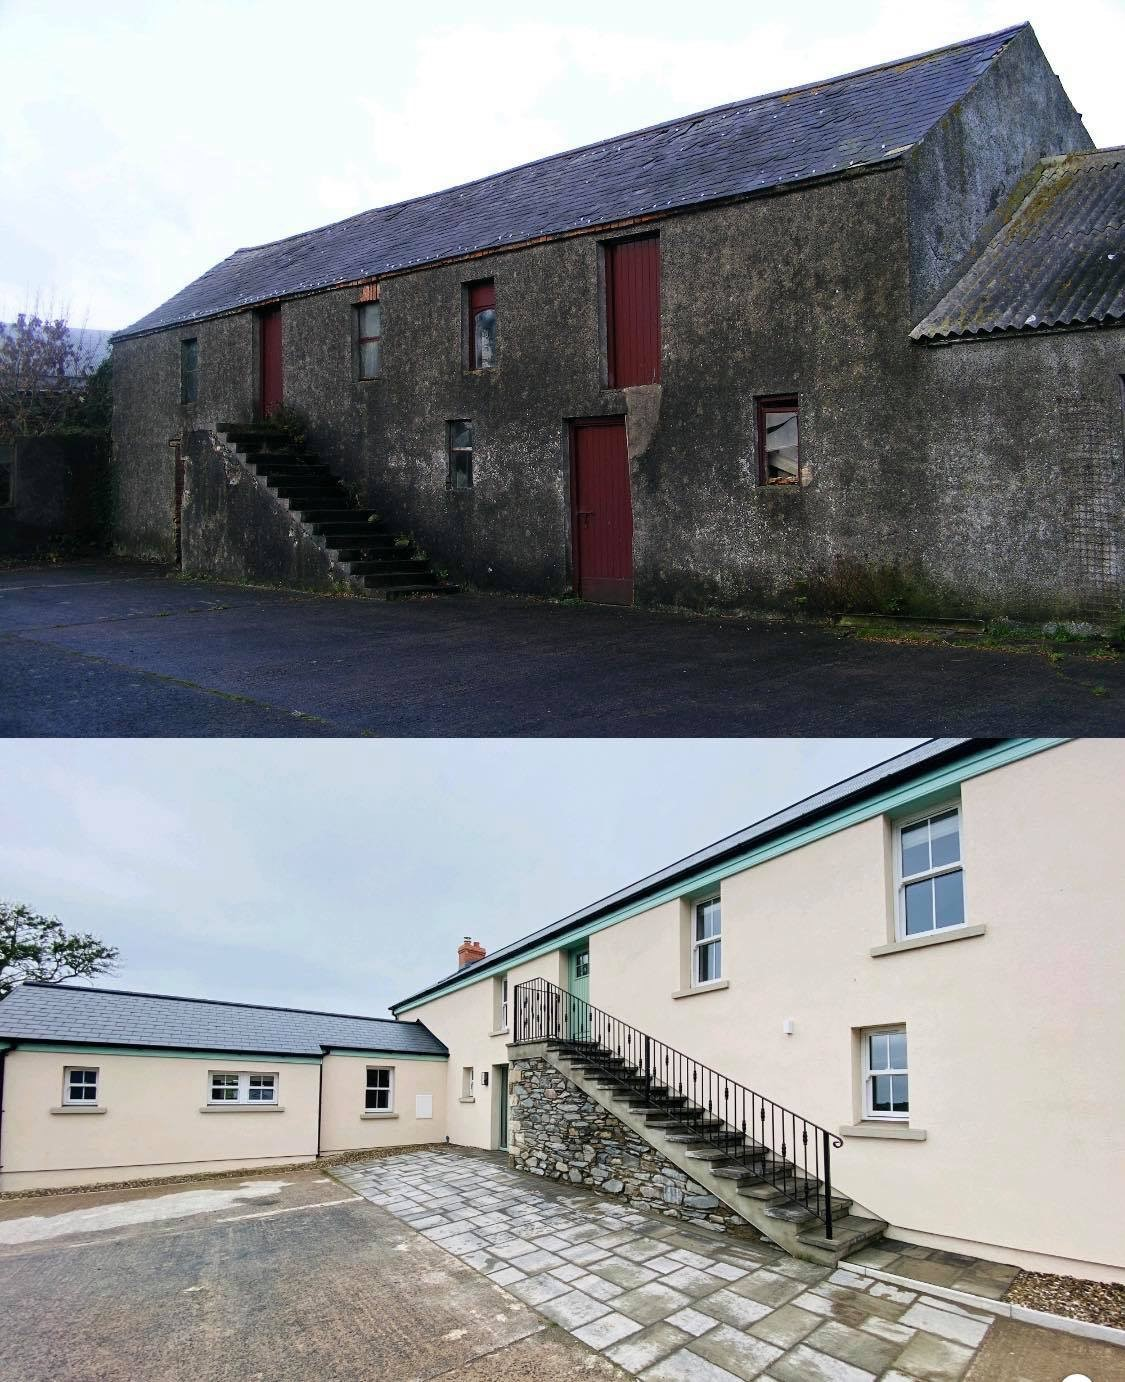 Image of Barn Conversion: Before and After External Wall Insulation